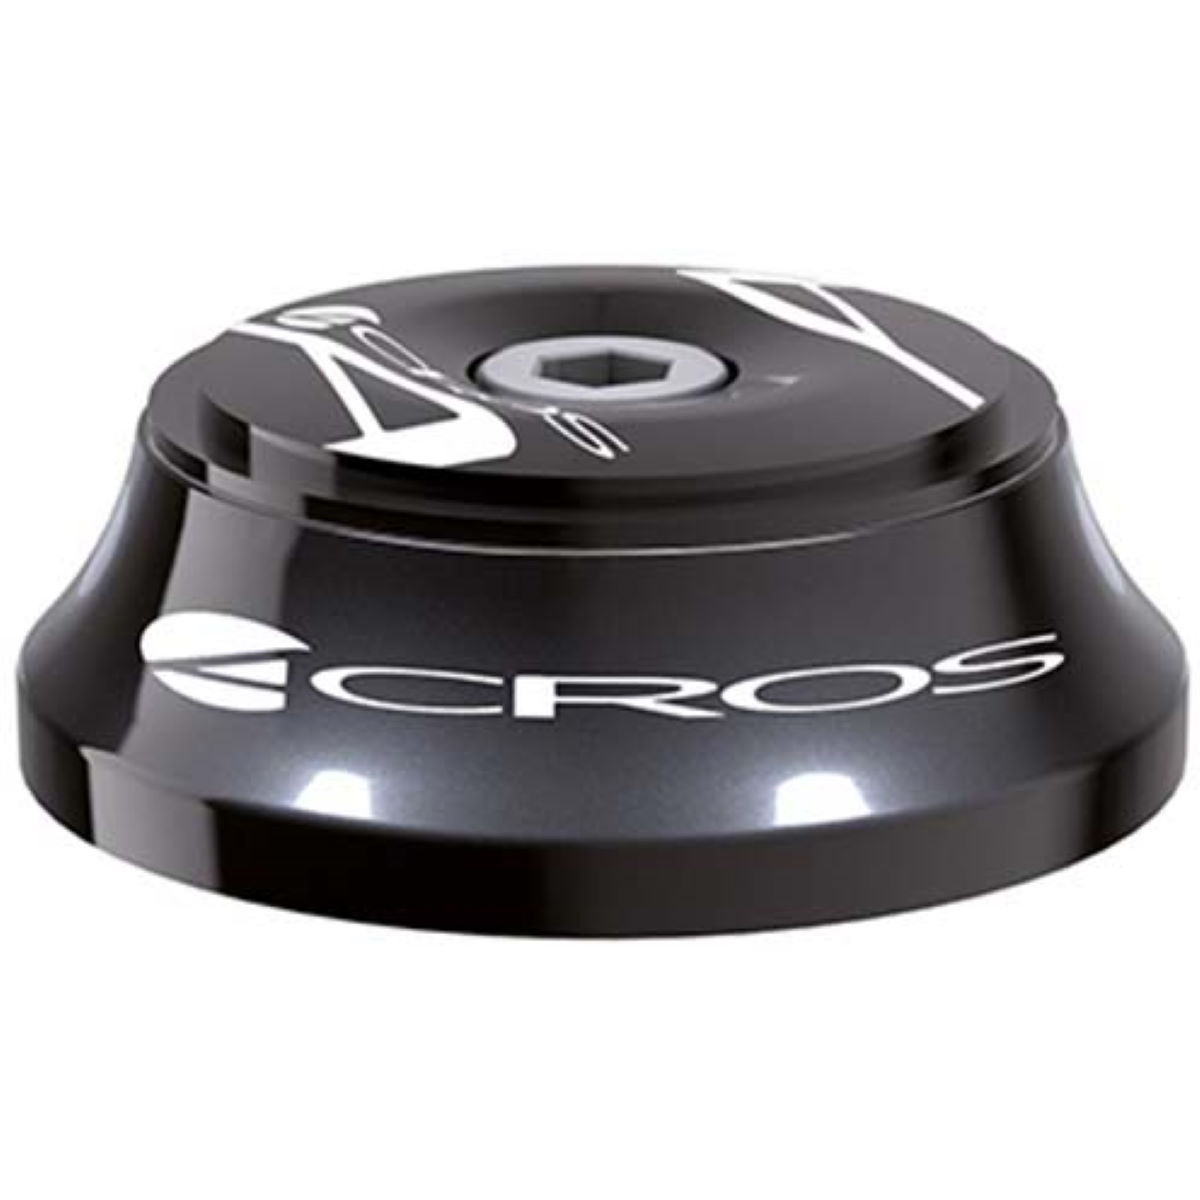 Acros Acros Ai-42 IS42/28.6 Upper Headset   Headsets